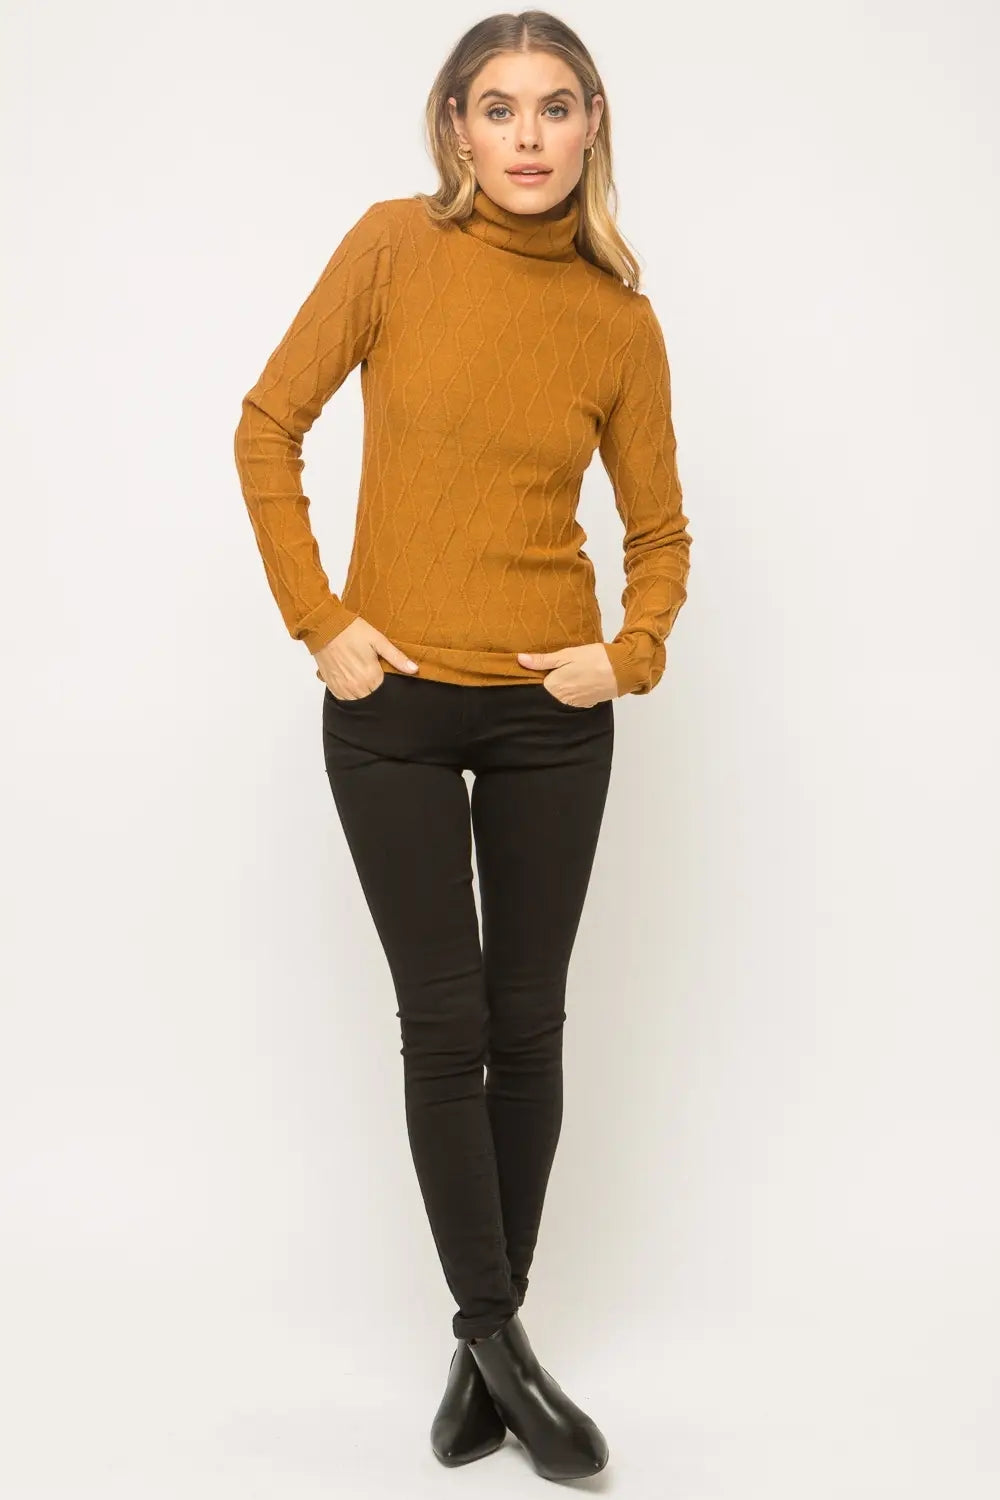 Taren Caramel Textured Turtleneck  Sweater